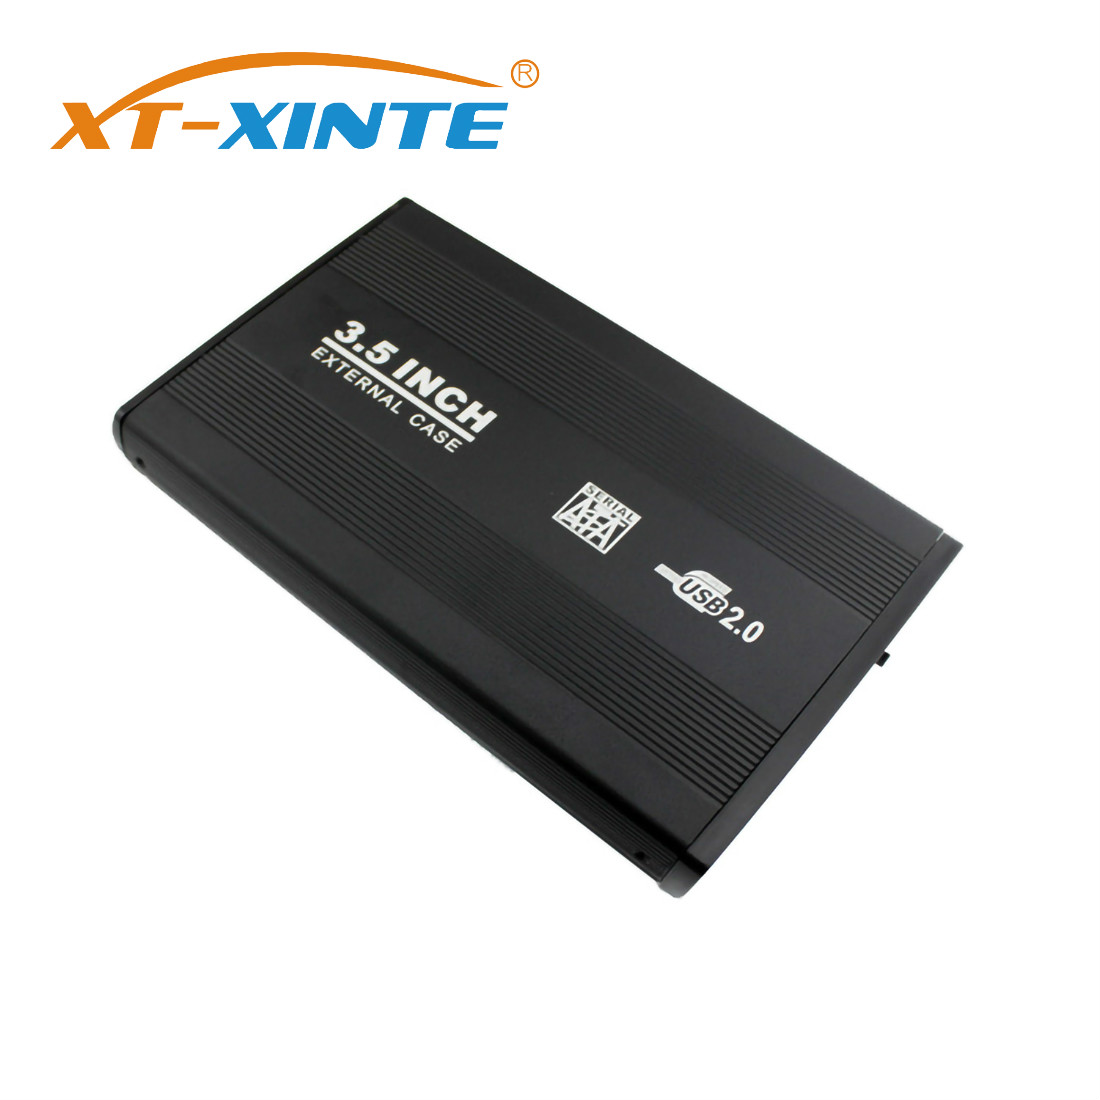 XT-XINTE 2.5 / 3.5 InchExternal Solid State  USB 3.0 5Gbps To SATA Port SSD Hard Drive Enclosure USB 2.0 480Mbps HDD Case